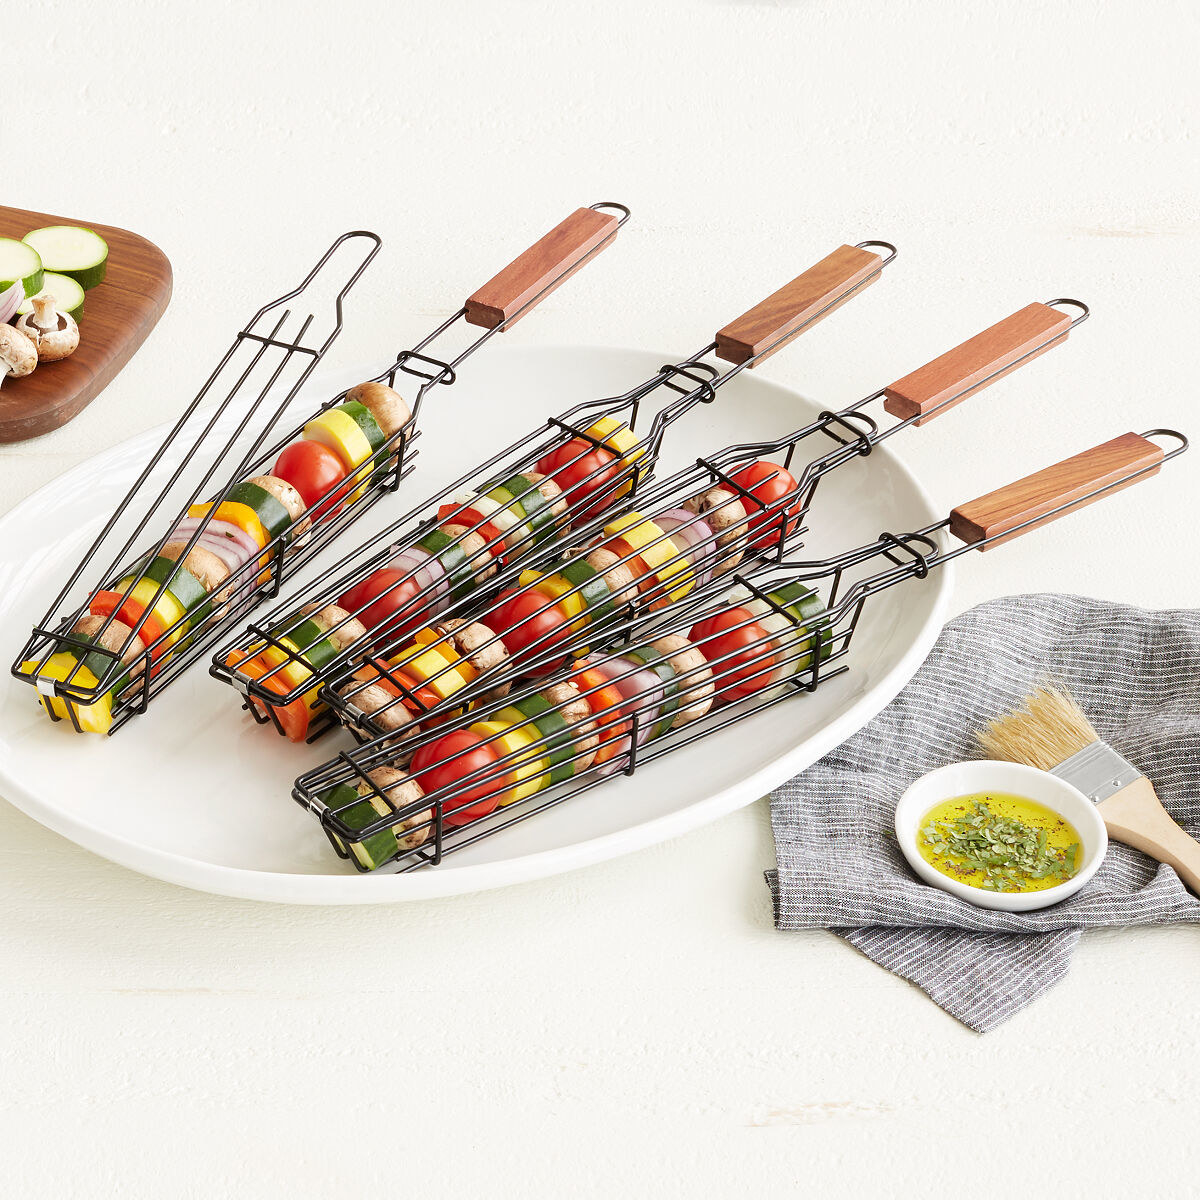 Cut veggies nestled neatly inside the baskets, which have a wooden handle for turning